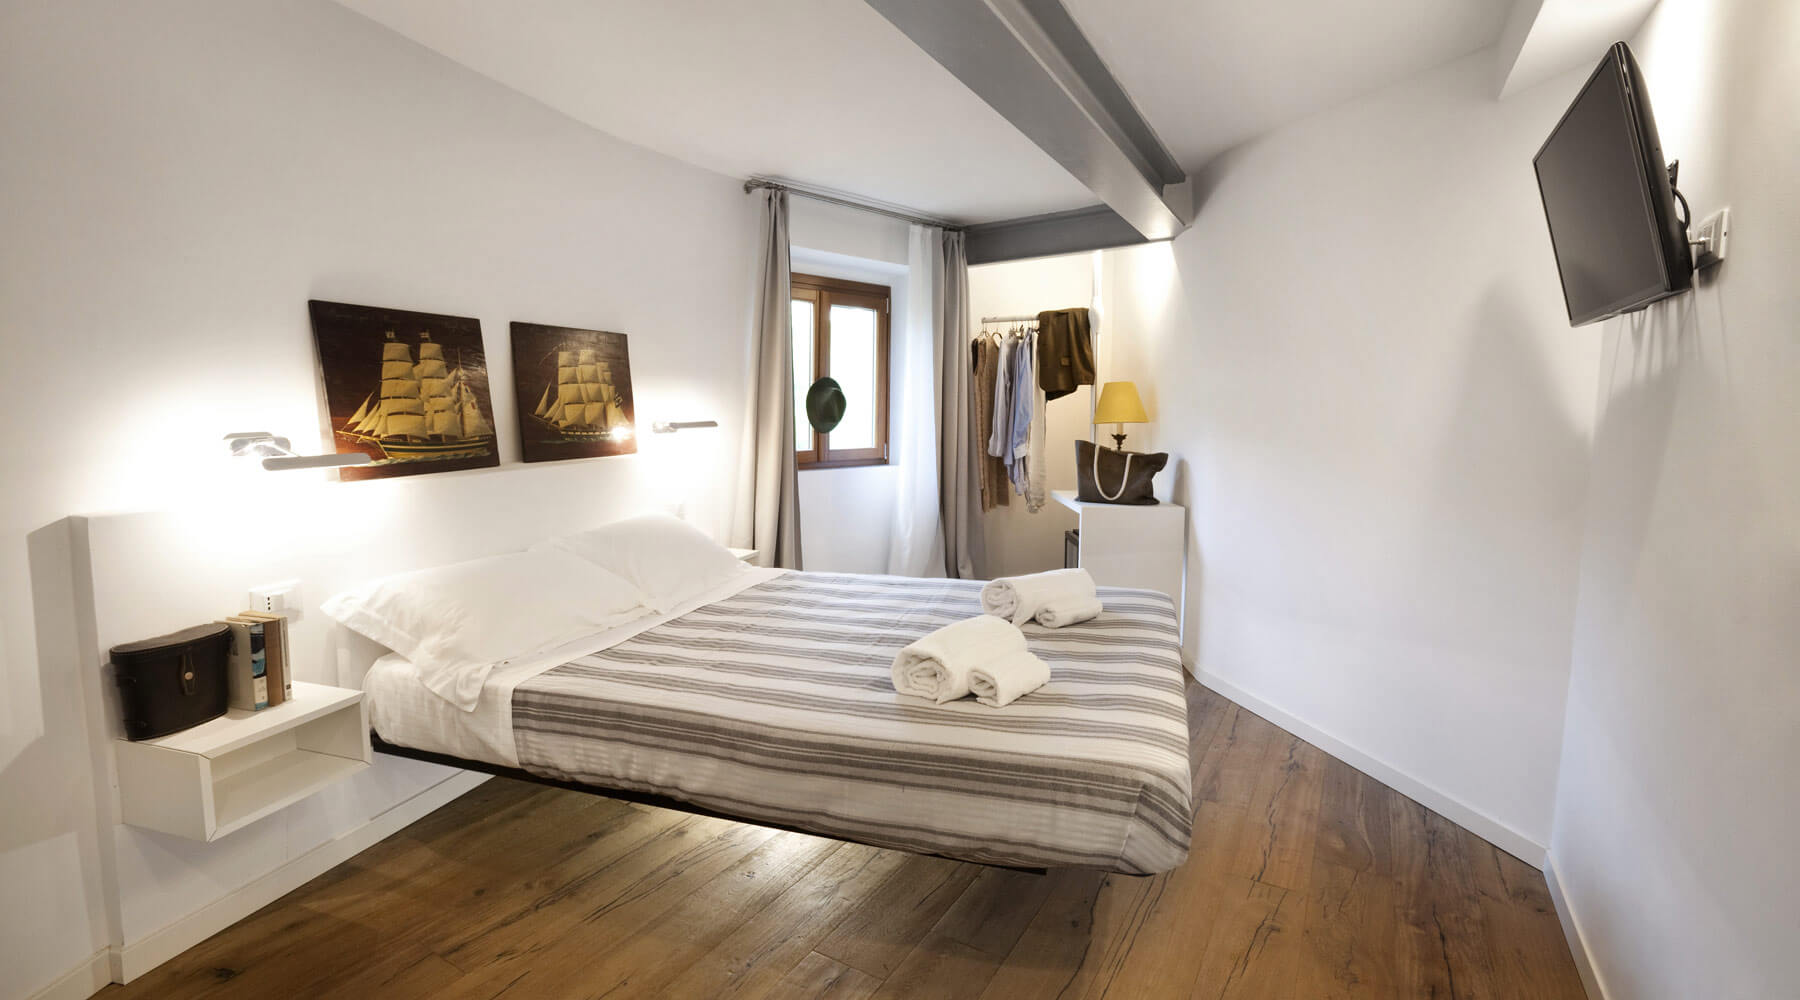 Lago welcome portovenere hotel di design lago - Camera da letto moderna ...